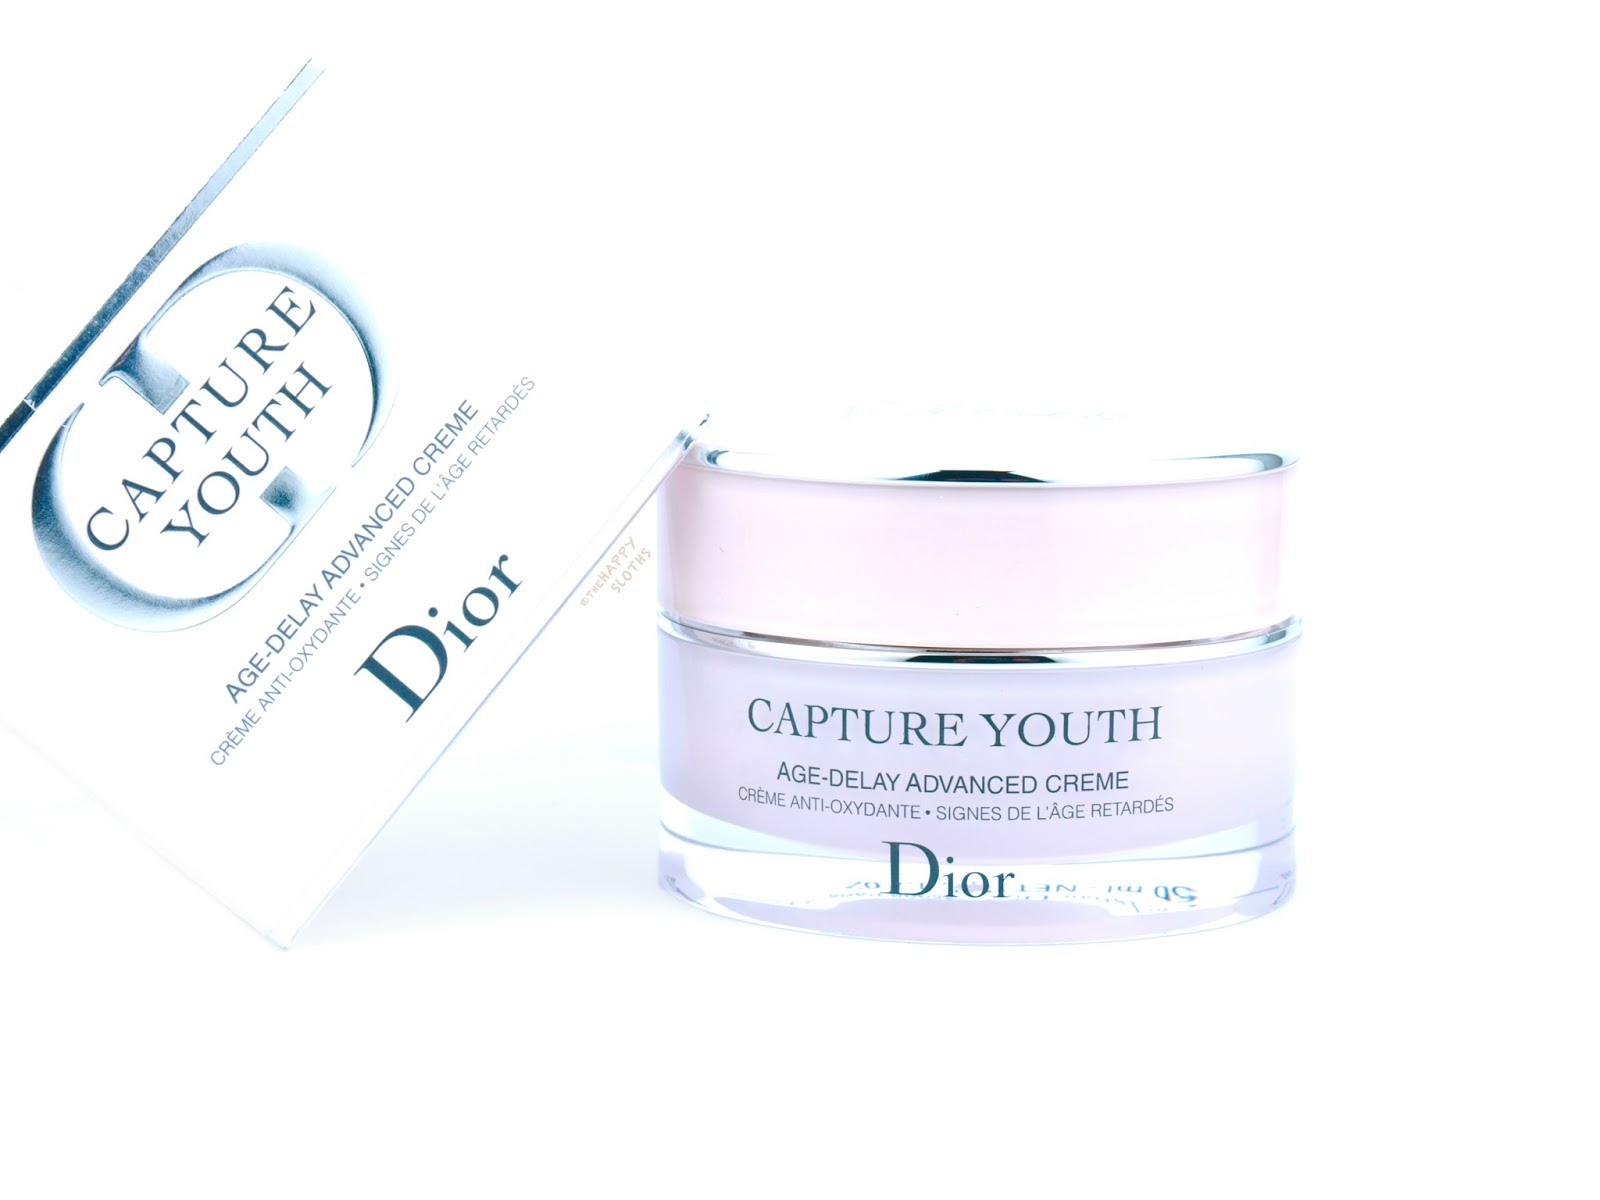 Dior Capture Youth Age Delay Advanced Creme Review